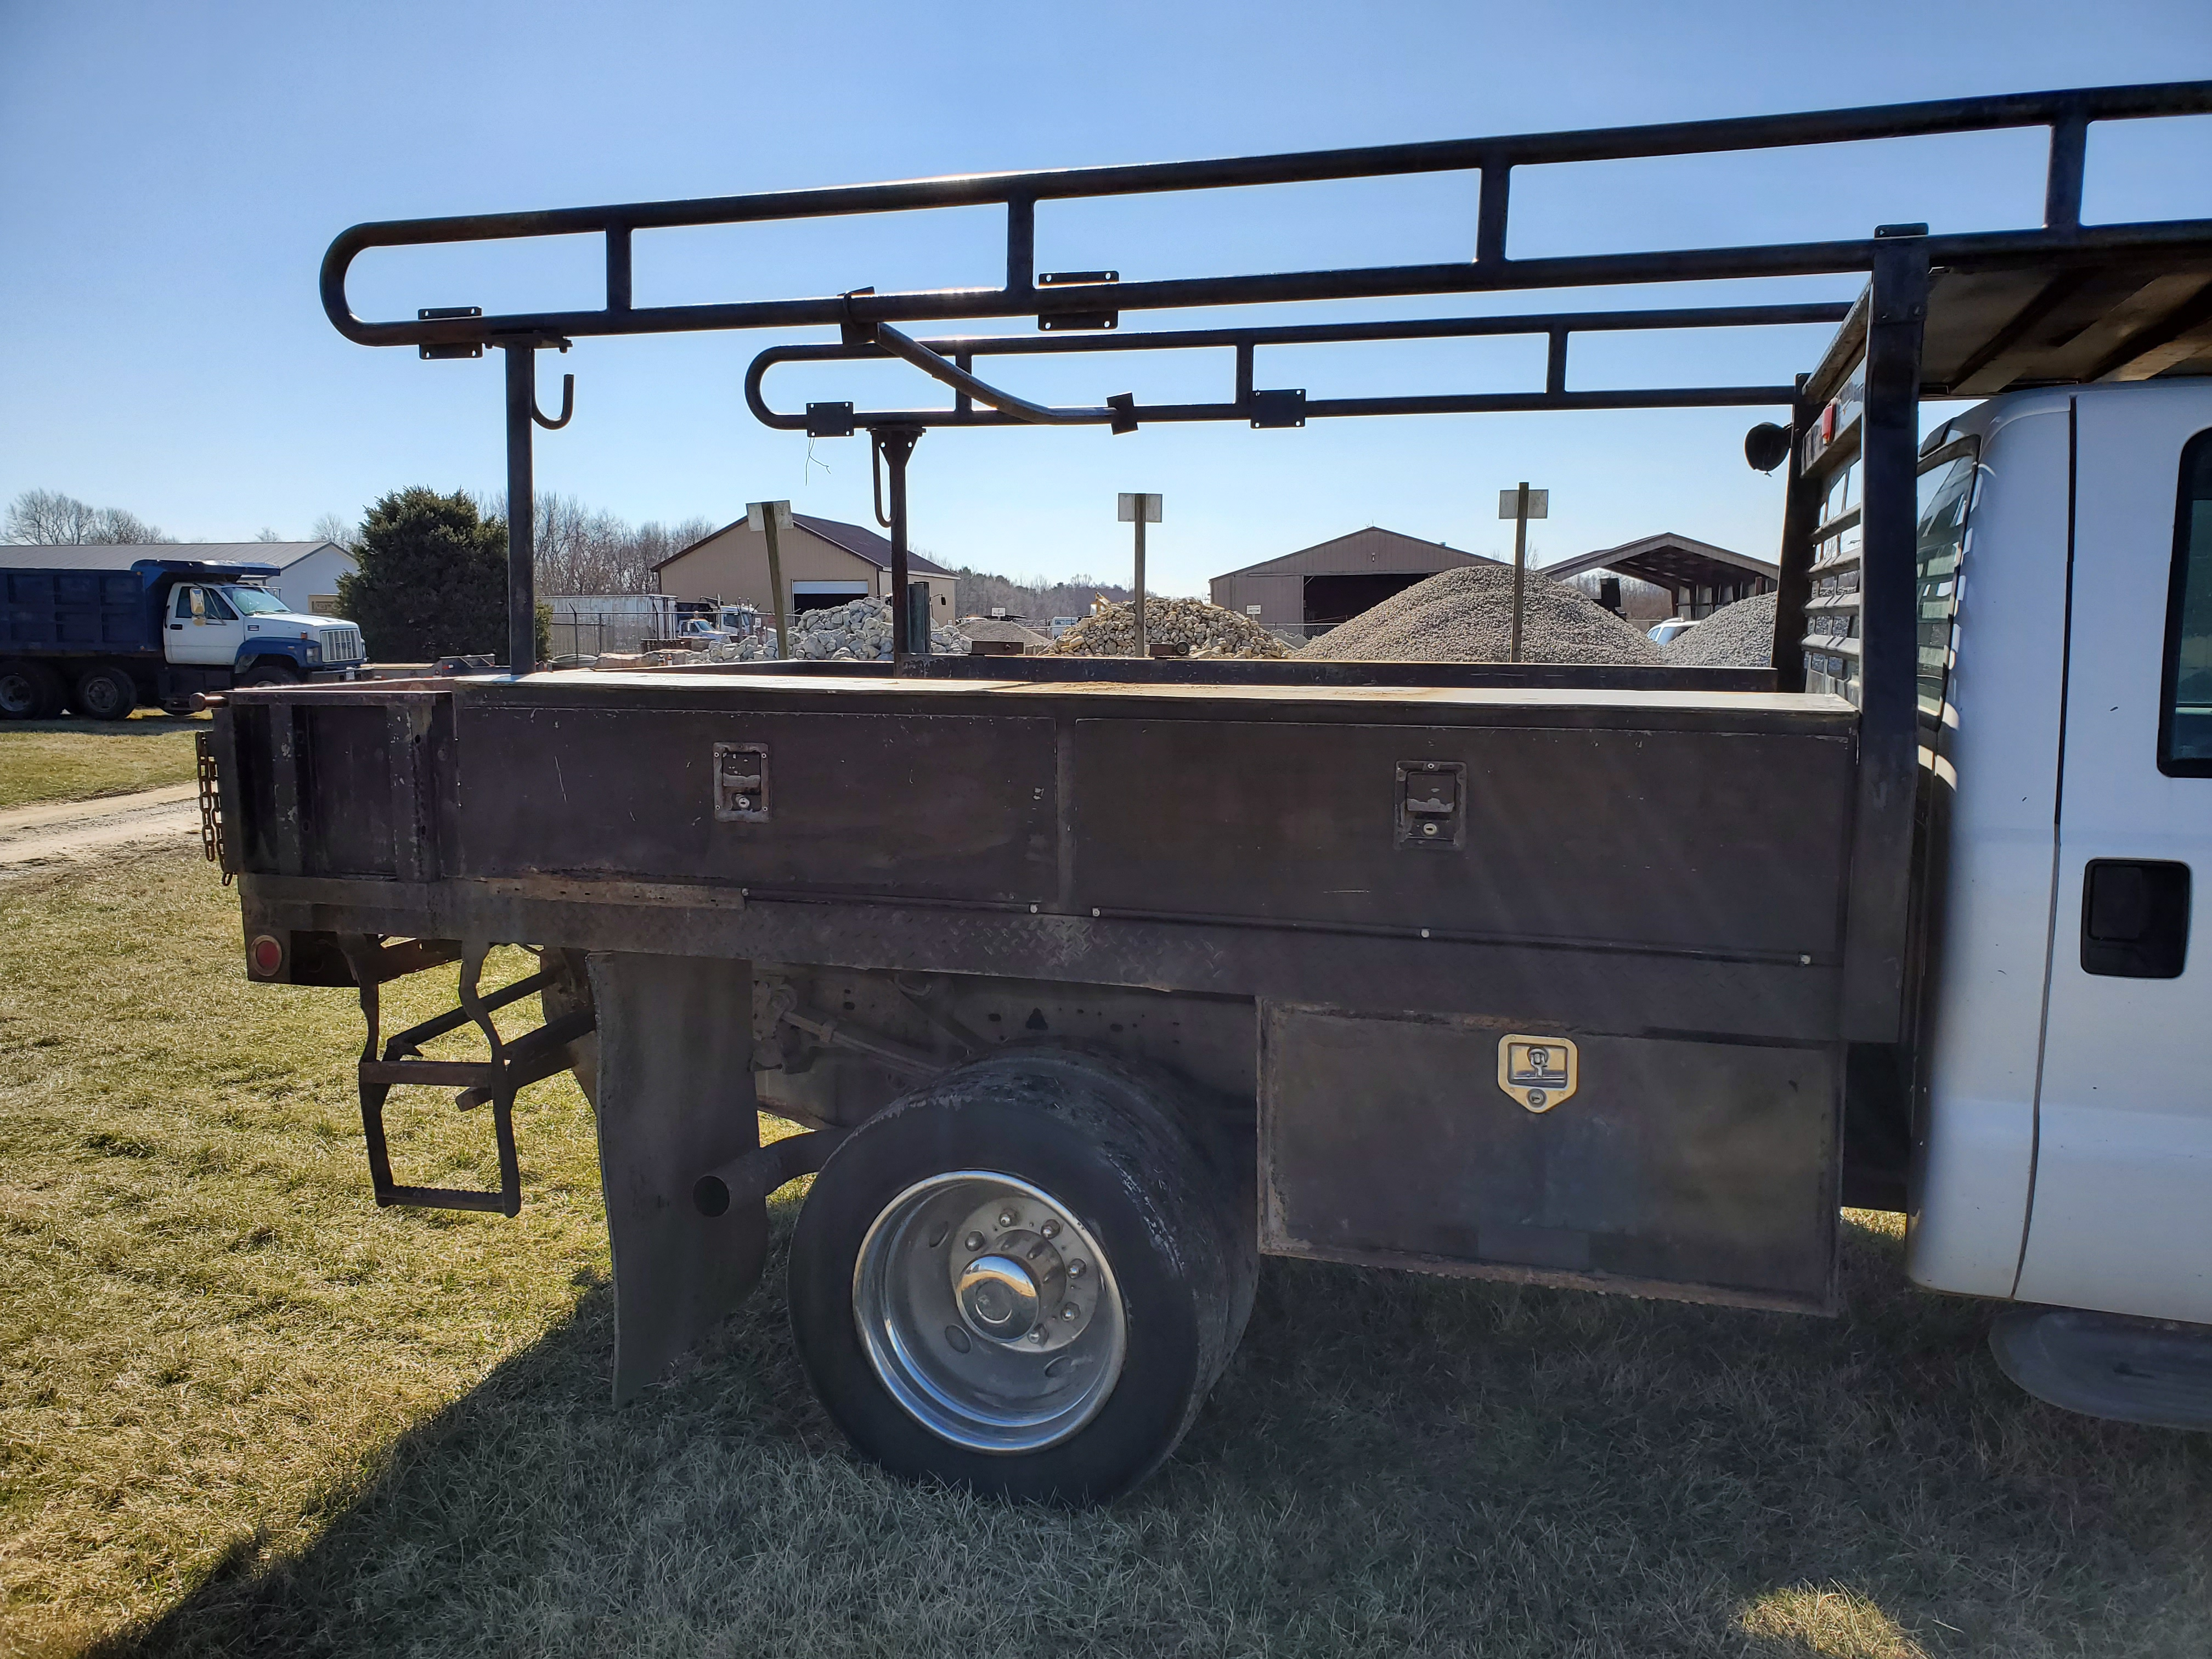 2003 F550 Ford Super Duty Pickup, Automatic, 7.3 Power Stroke Diesel, 8' Foot Omaha Flatbed - Image 7 of 18